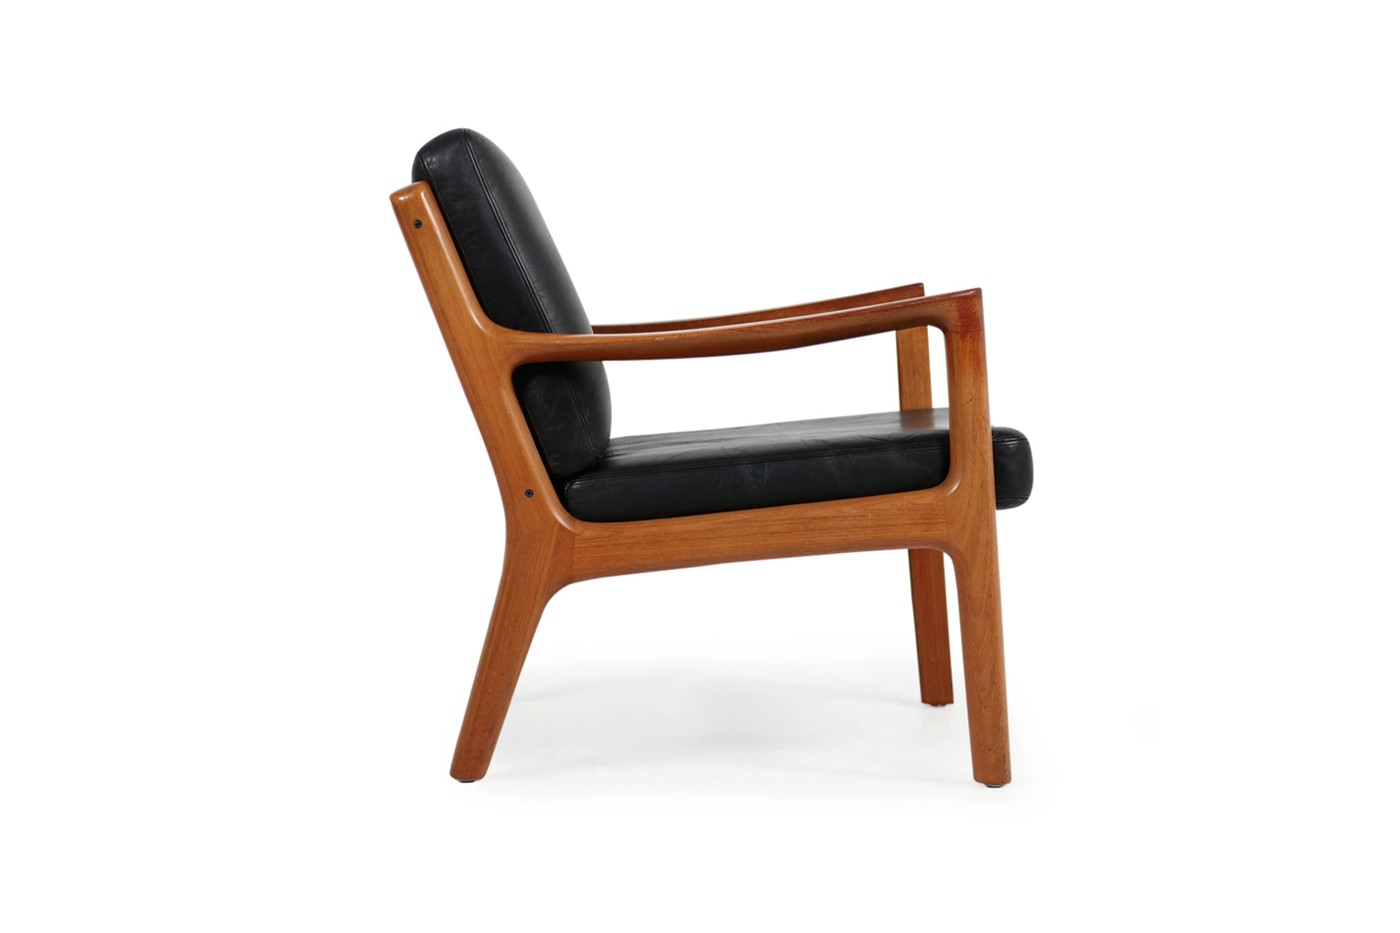 Danish Sessel 1960s Danish Modern Ole Wanscher Easy Chair Teak Black Leather No 1